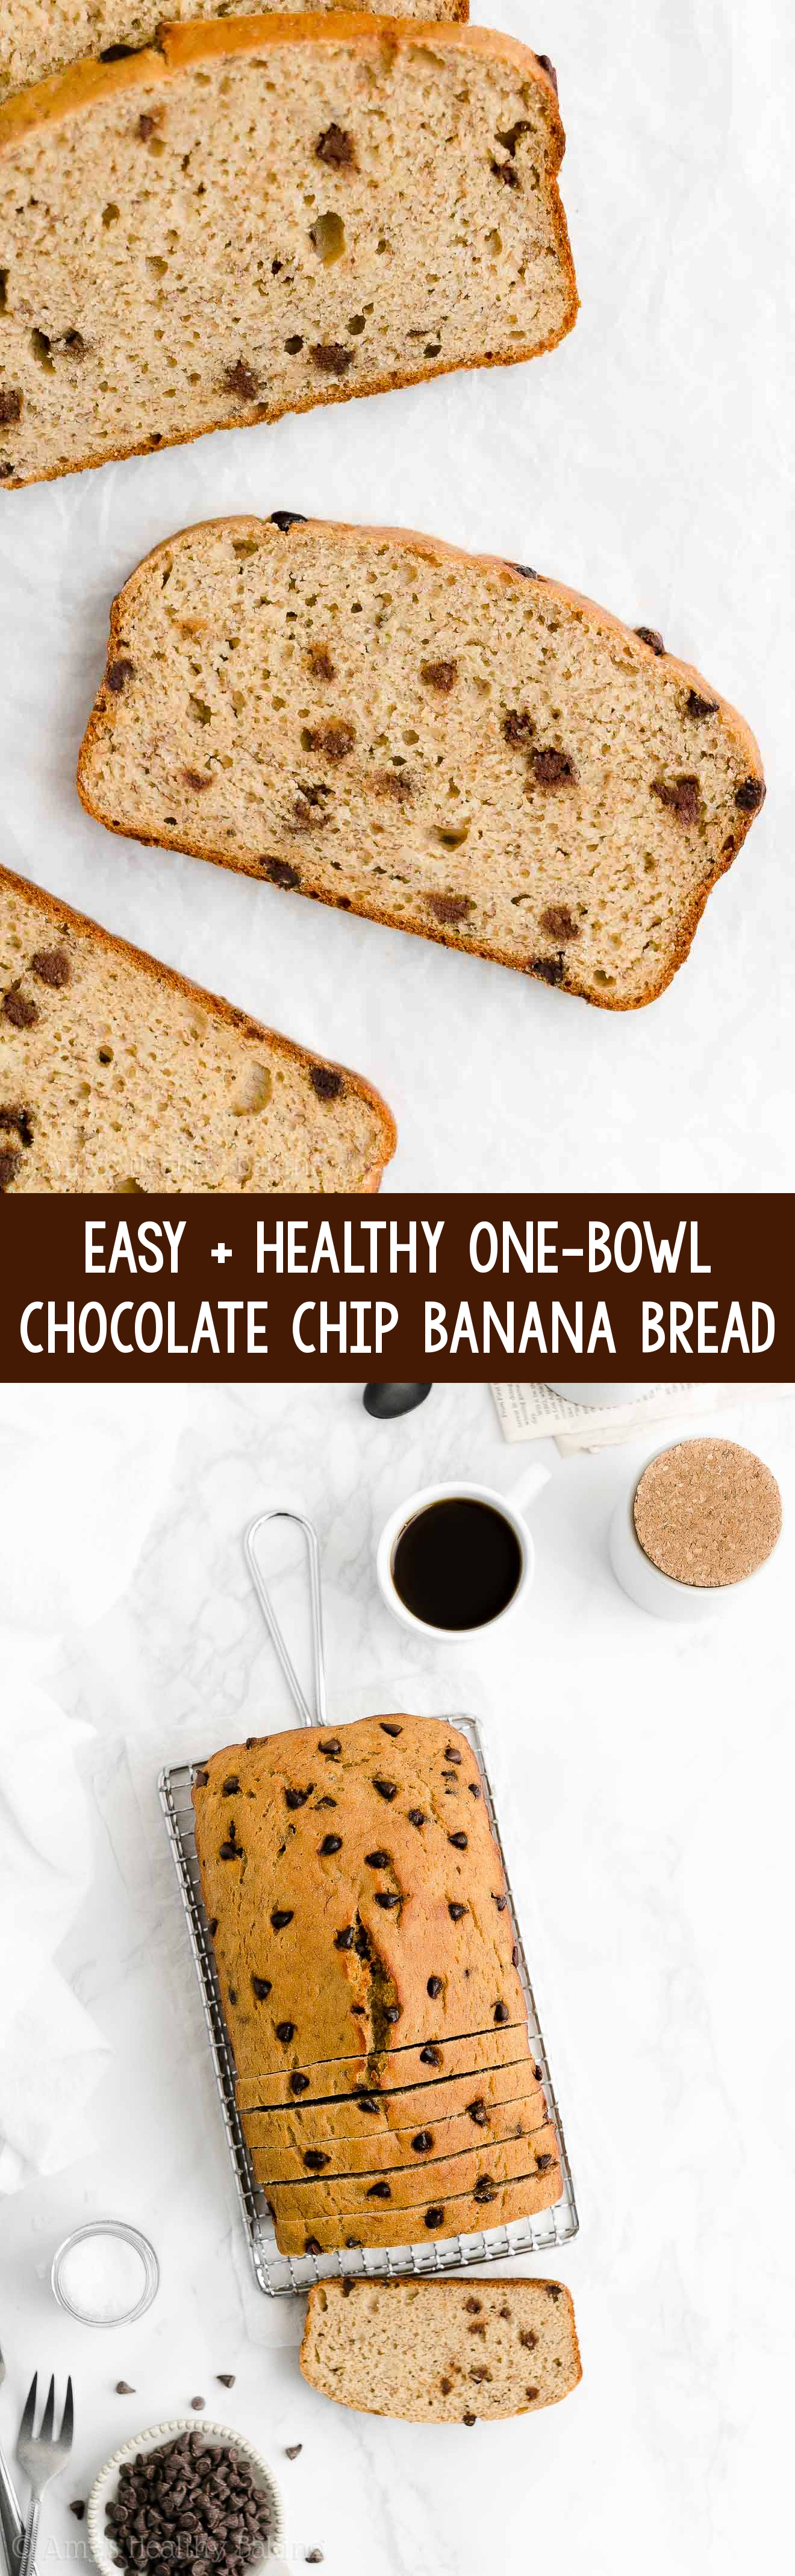 Best Easy One-Bowl Healthy Greek Yogurt No Sugar Chocolate Chip Banana Bread